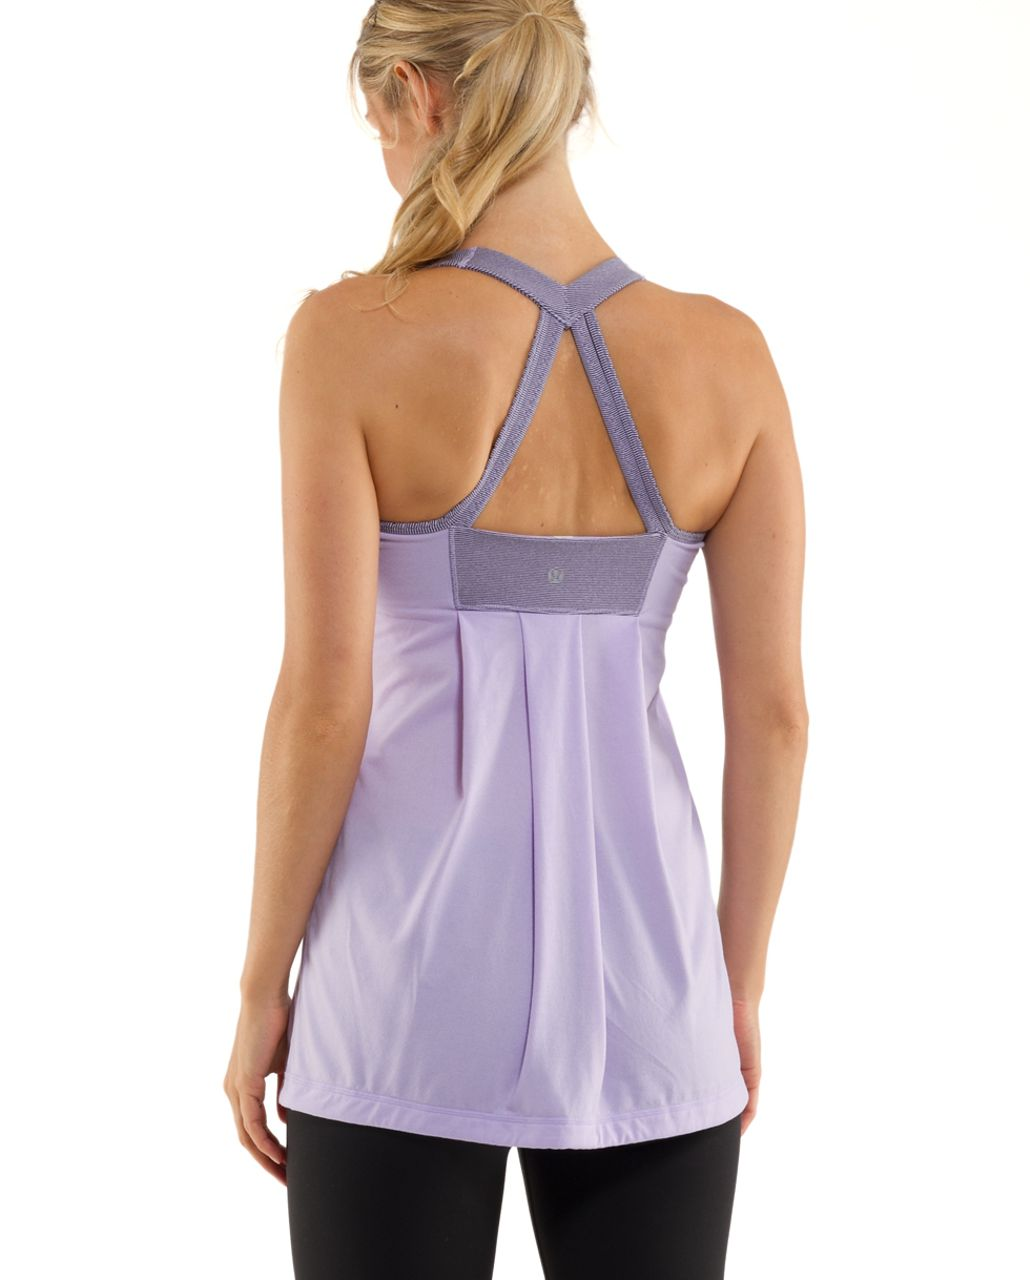 Lululemon Power Technique Tank - Lilac /  Lilac Heathered Coal Wee Stripe